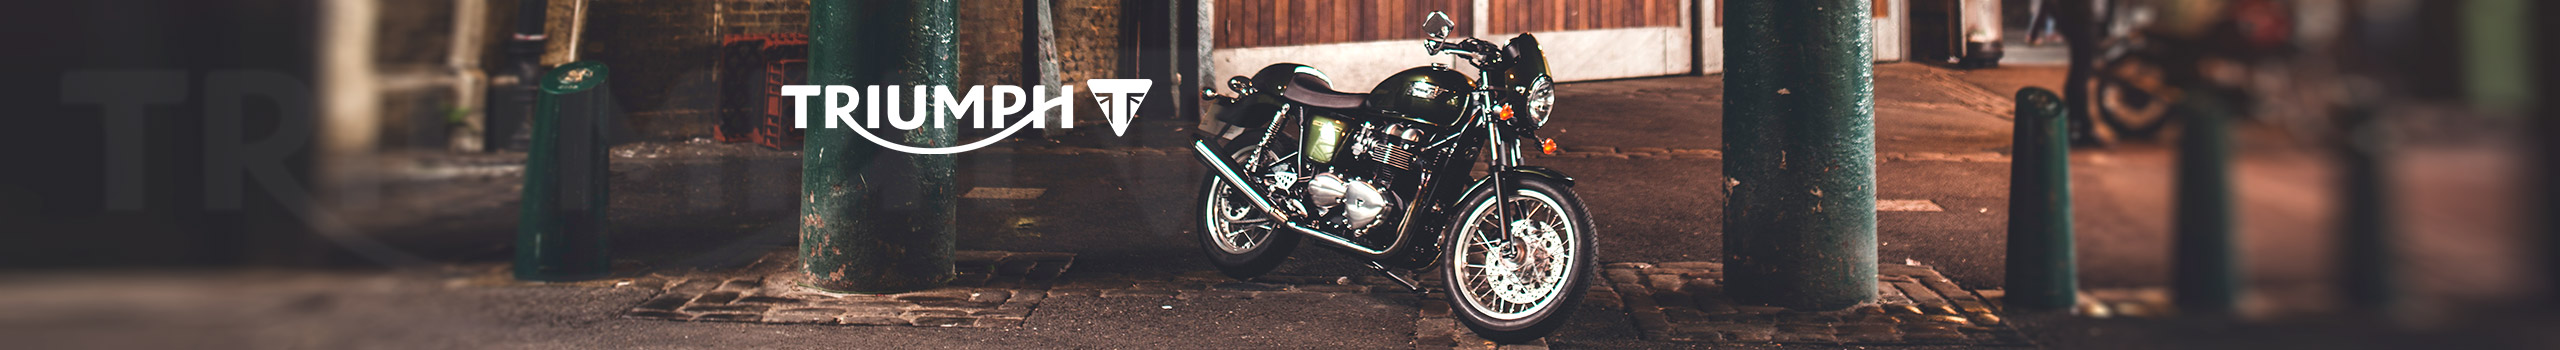 Triumph motorcycles image